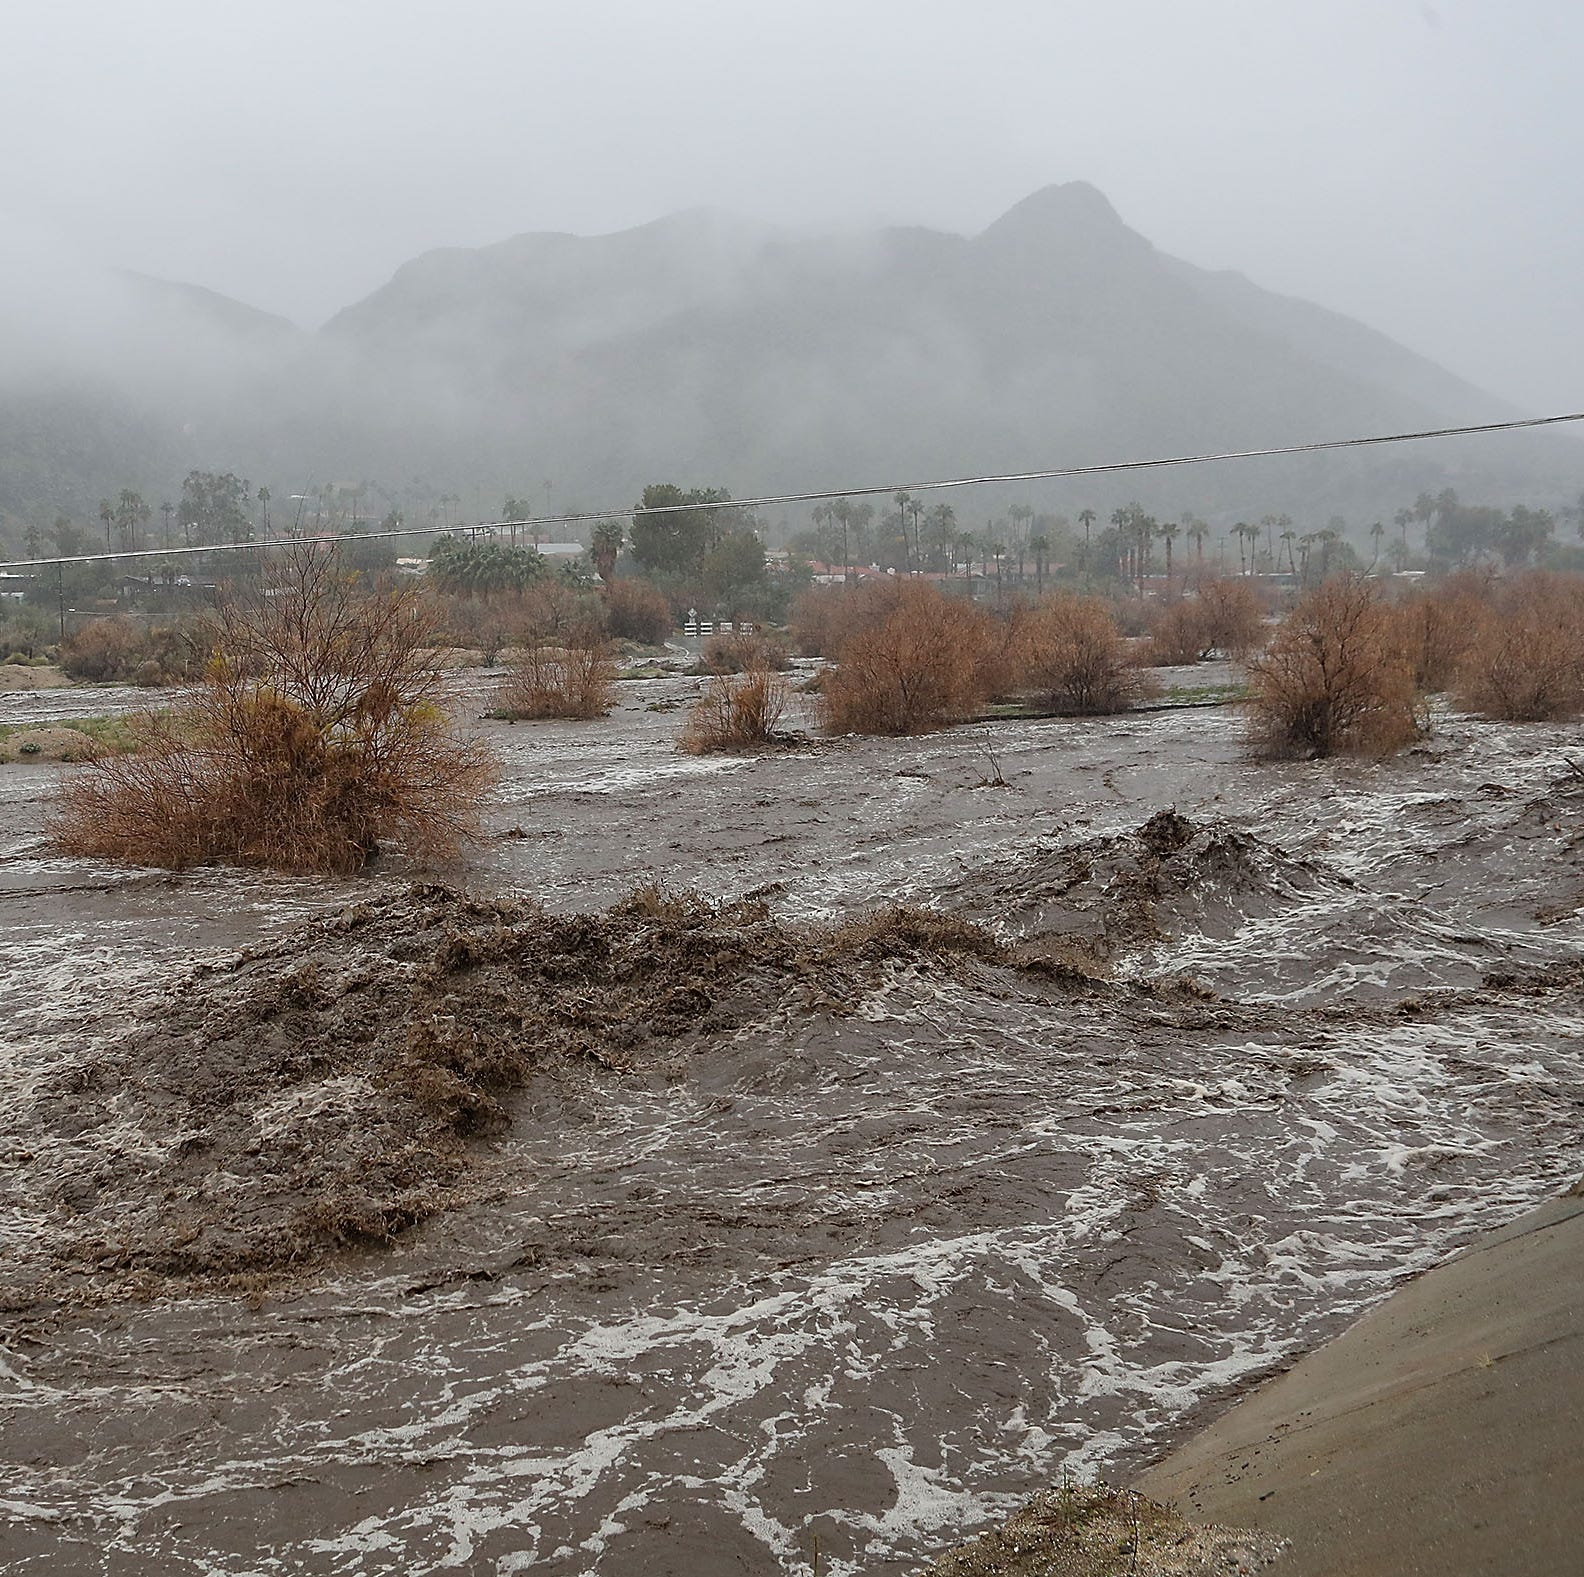 Palm Springs declares local emergency after flooding causes nearly $1.9 million in damage